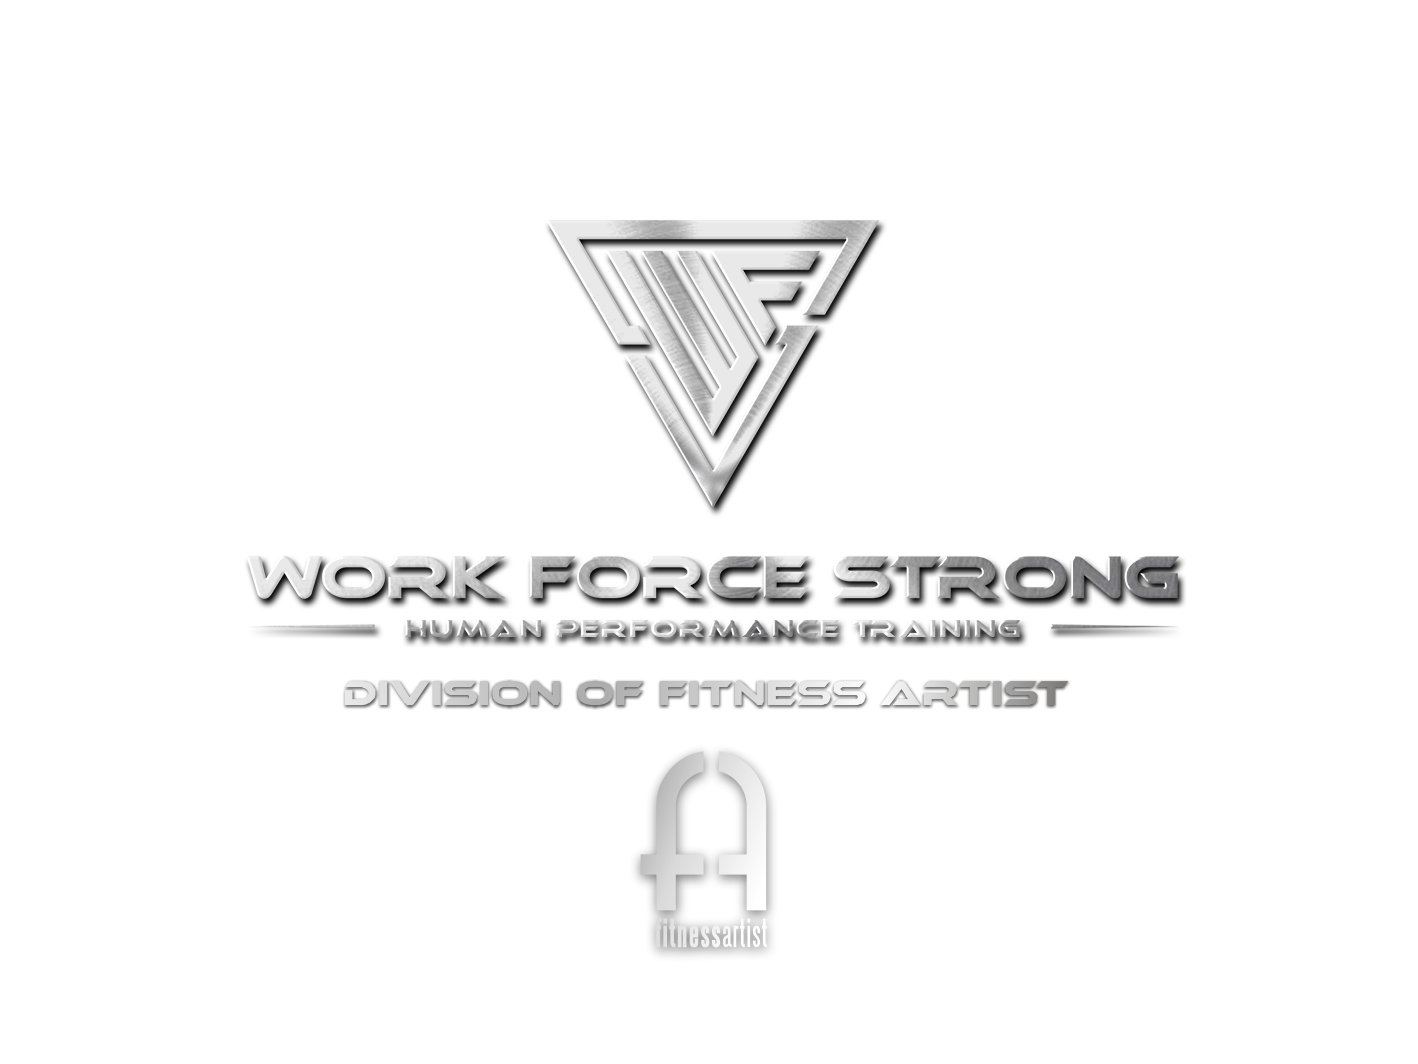 Work Force Strong logo